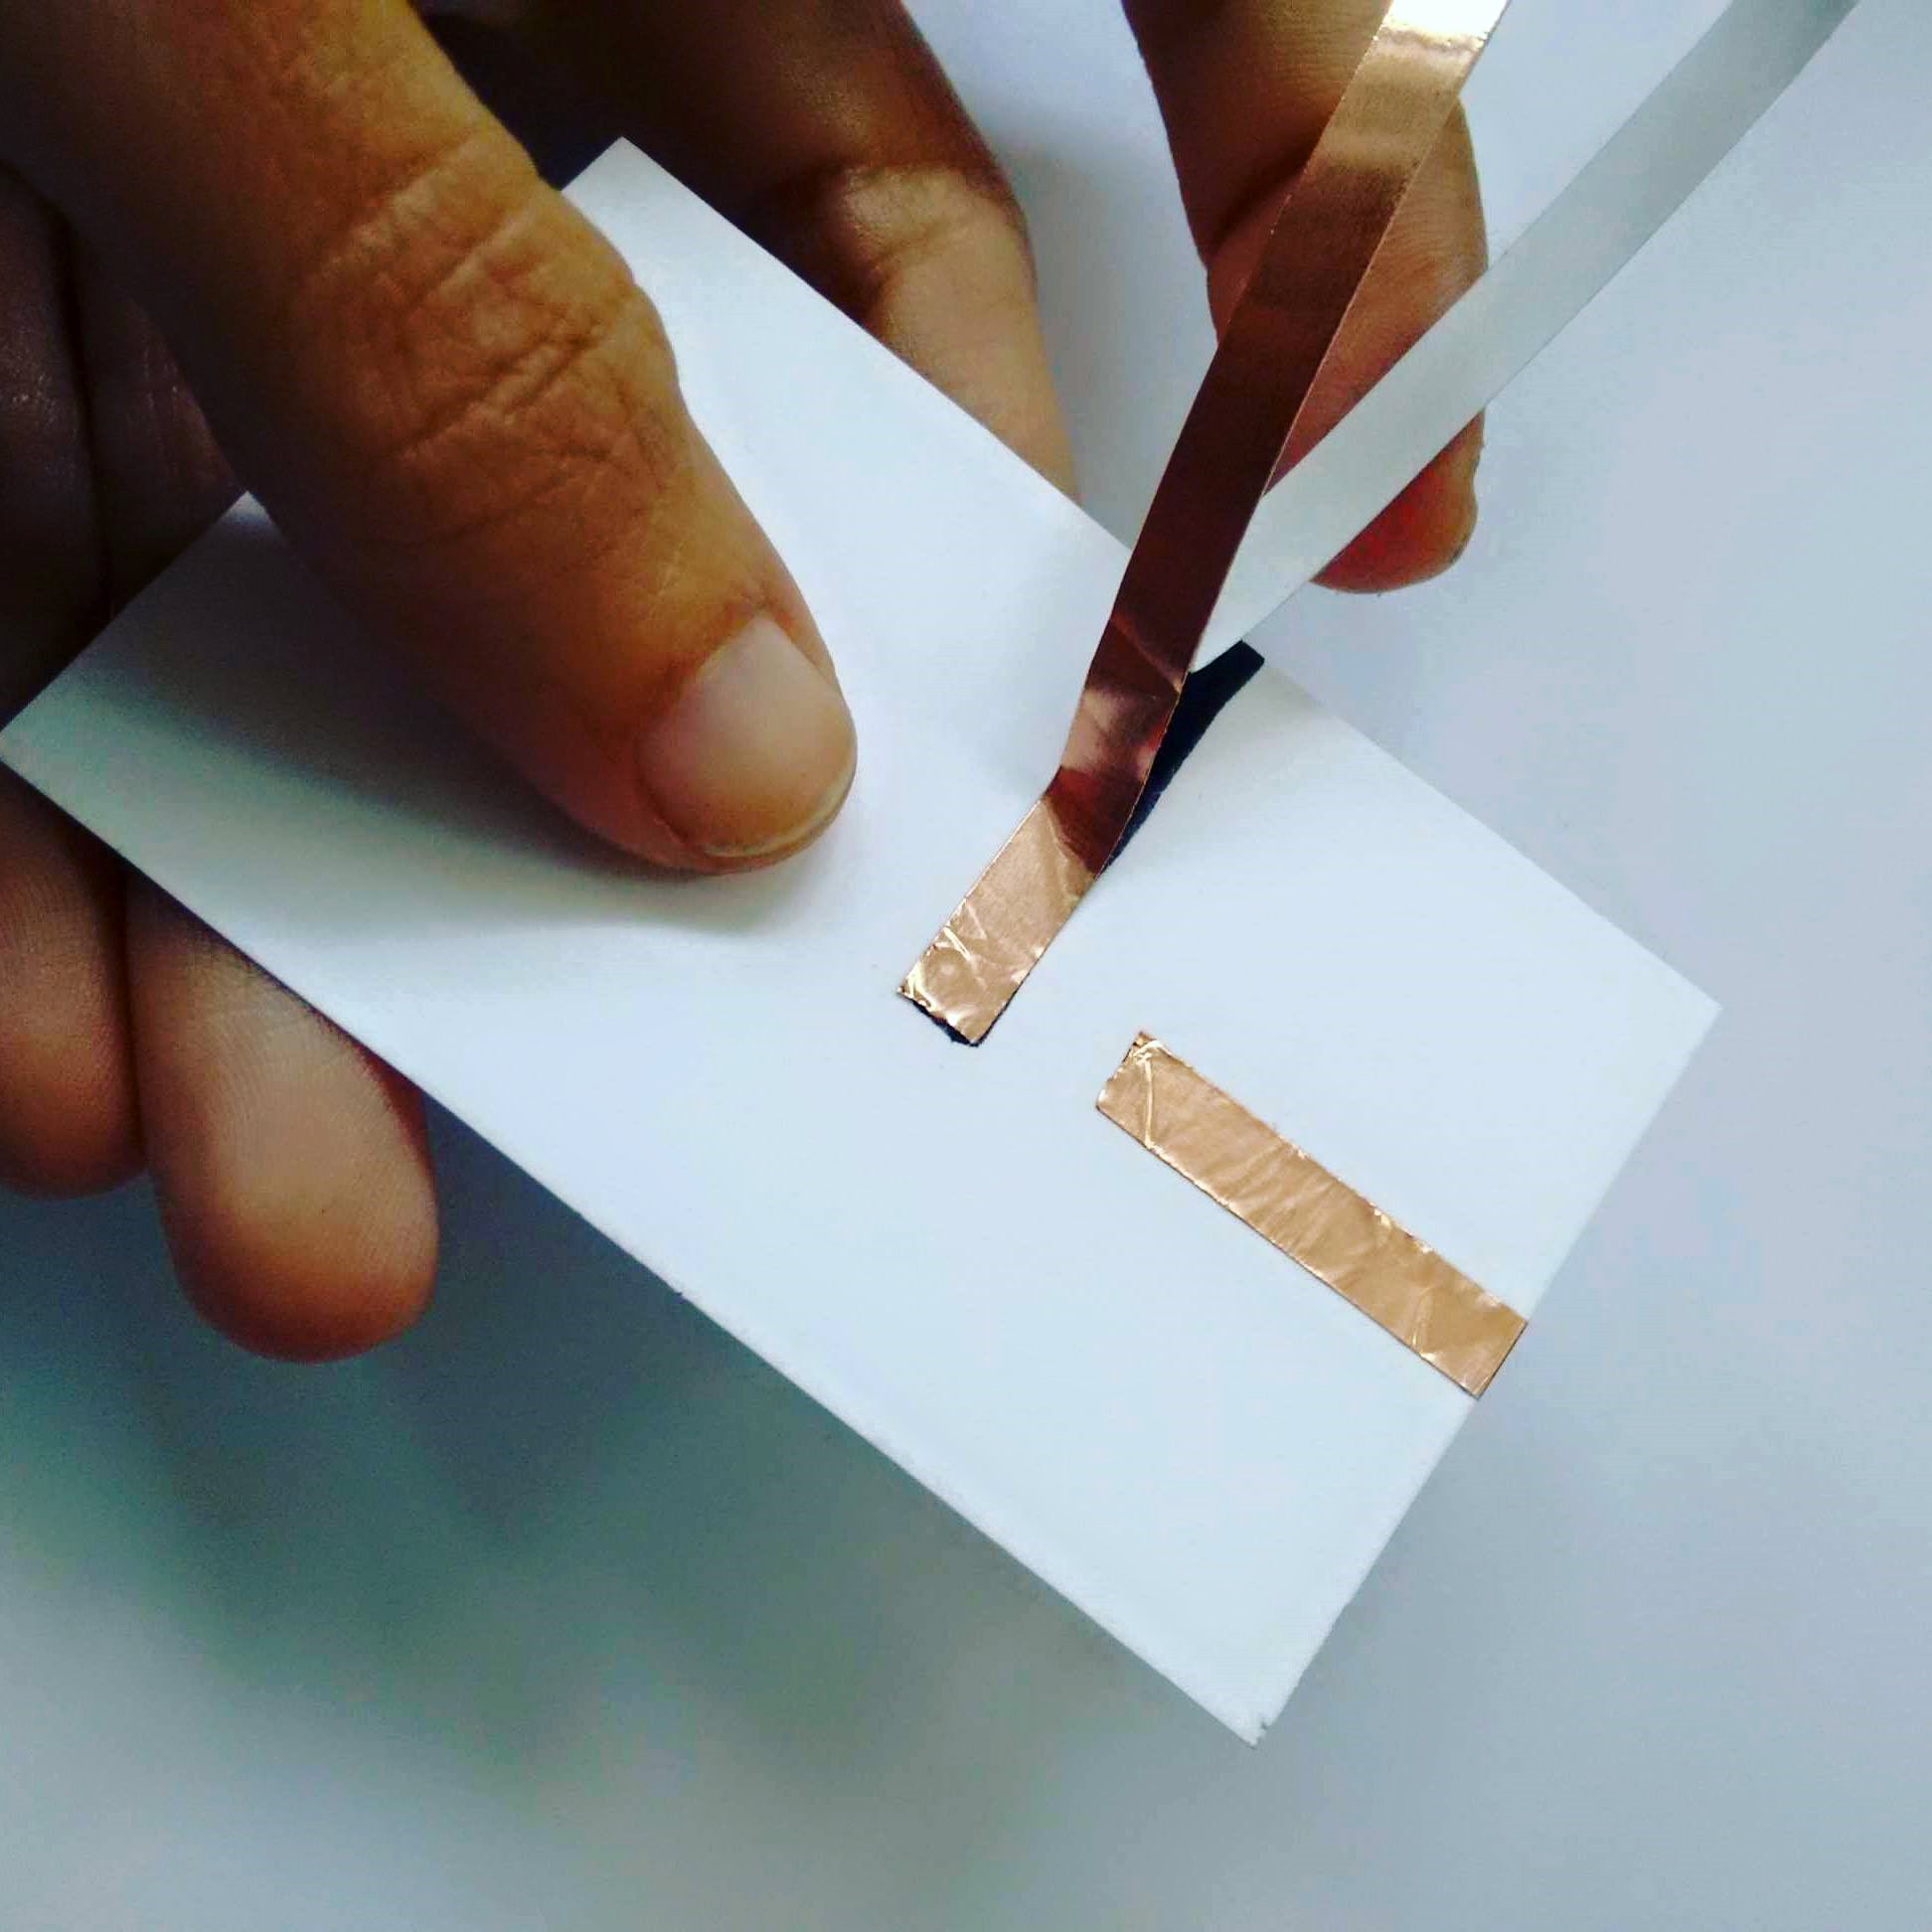 Picture of Cut the Copper Tape and Start With the Second Section of the Circuit